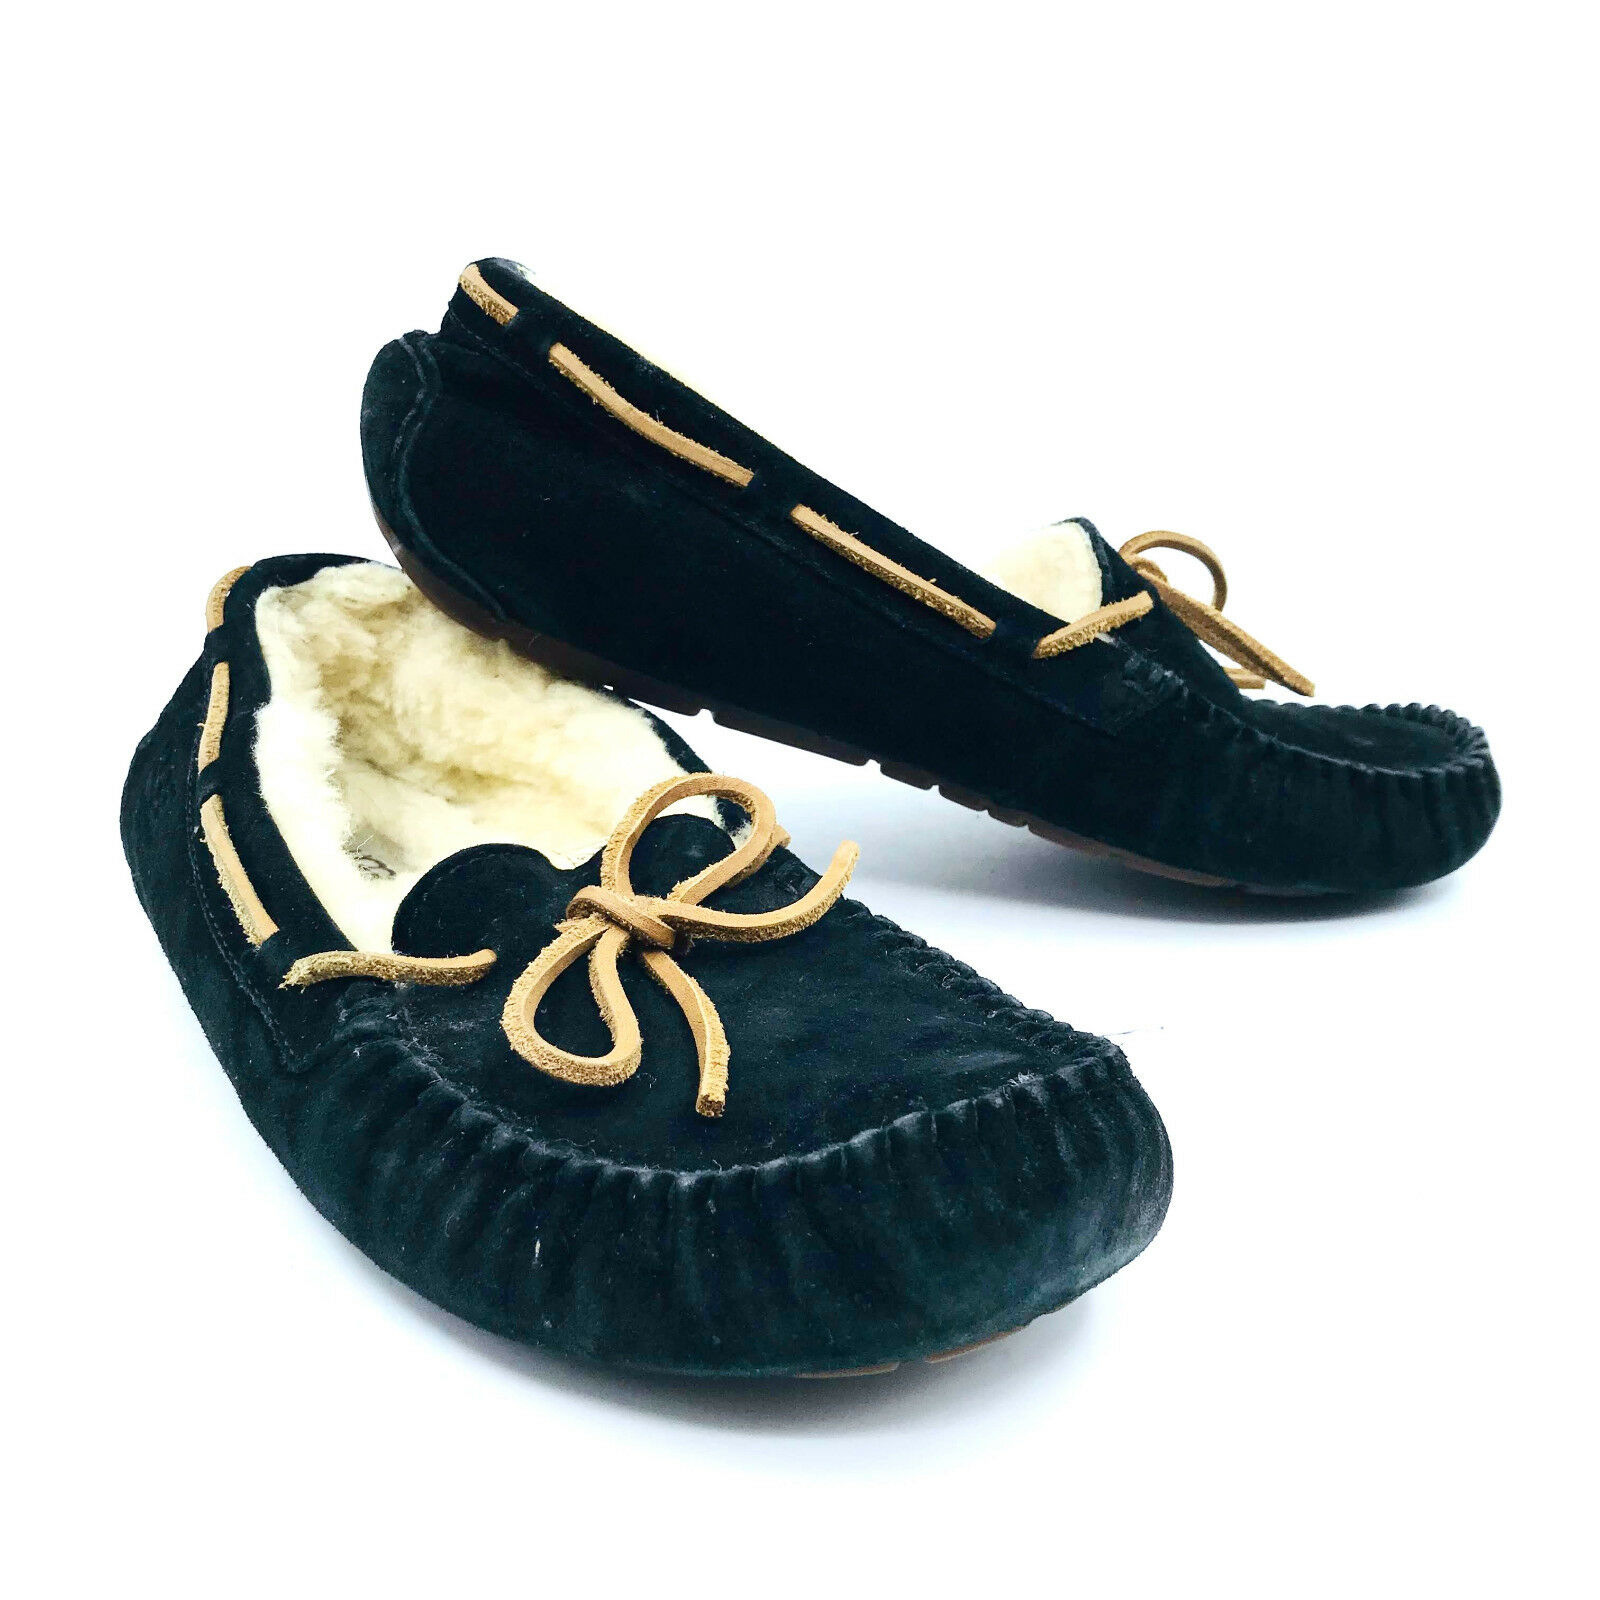 1c97bc12767 Details about Ugg Australia Dakota Black Slippers Moccasins Womens Size 8